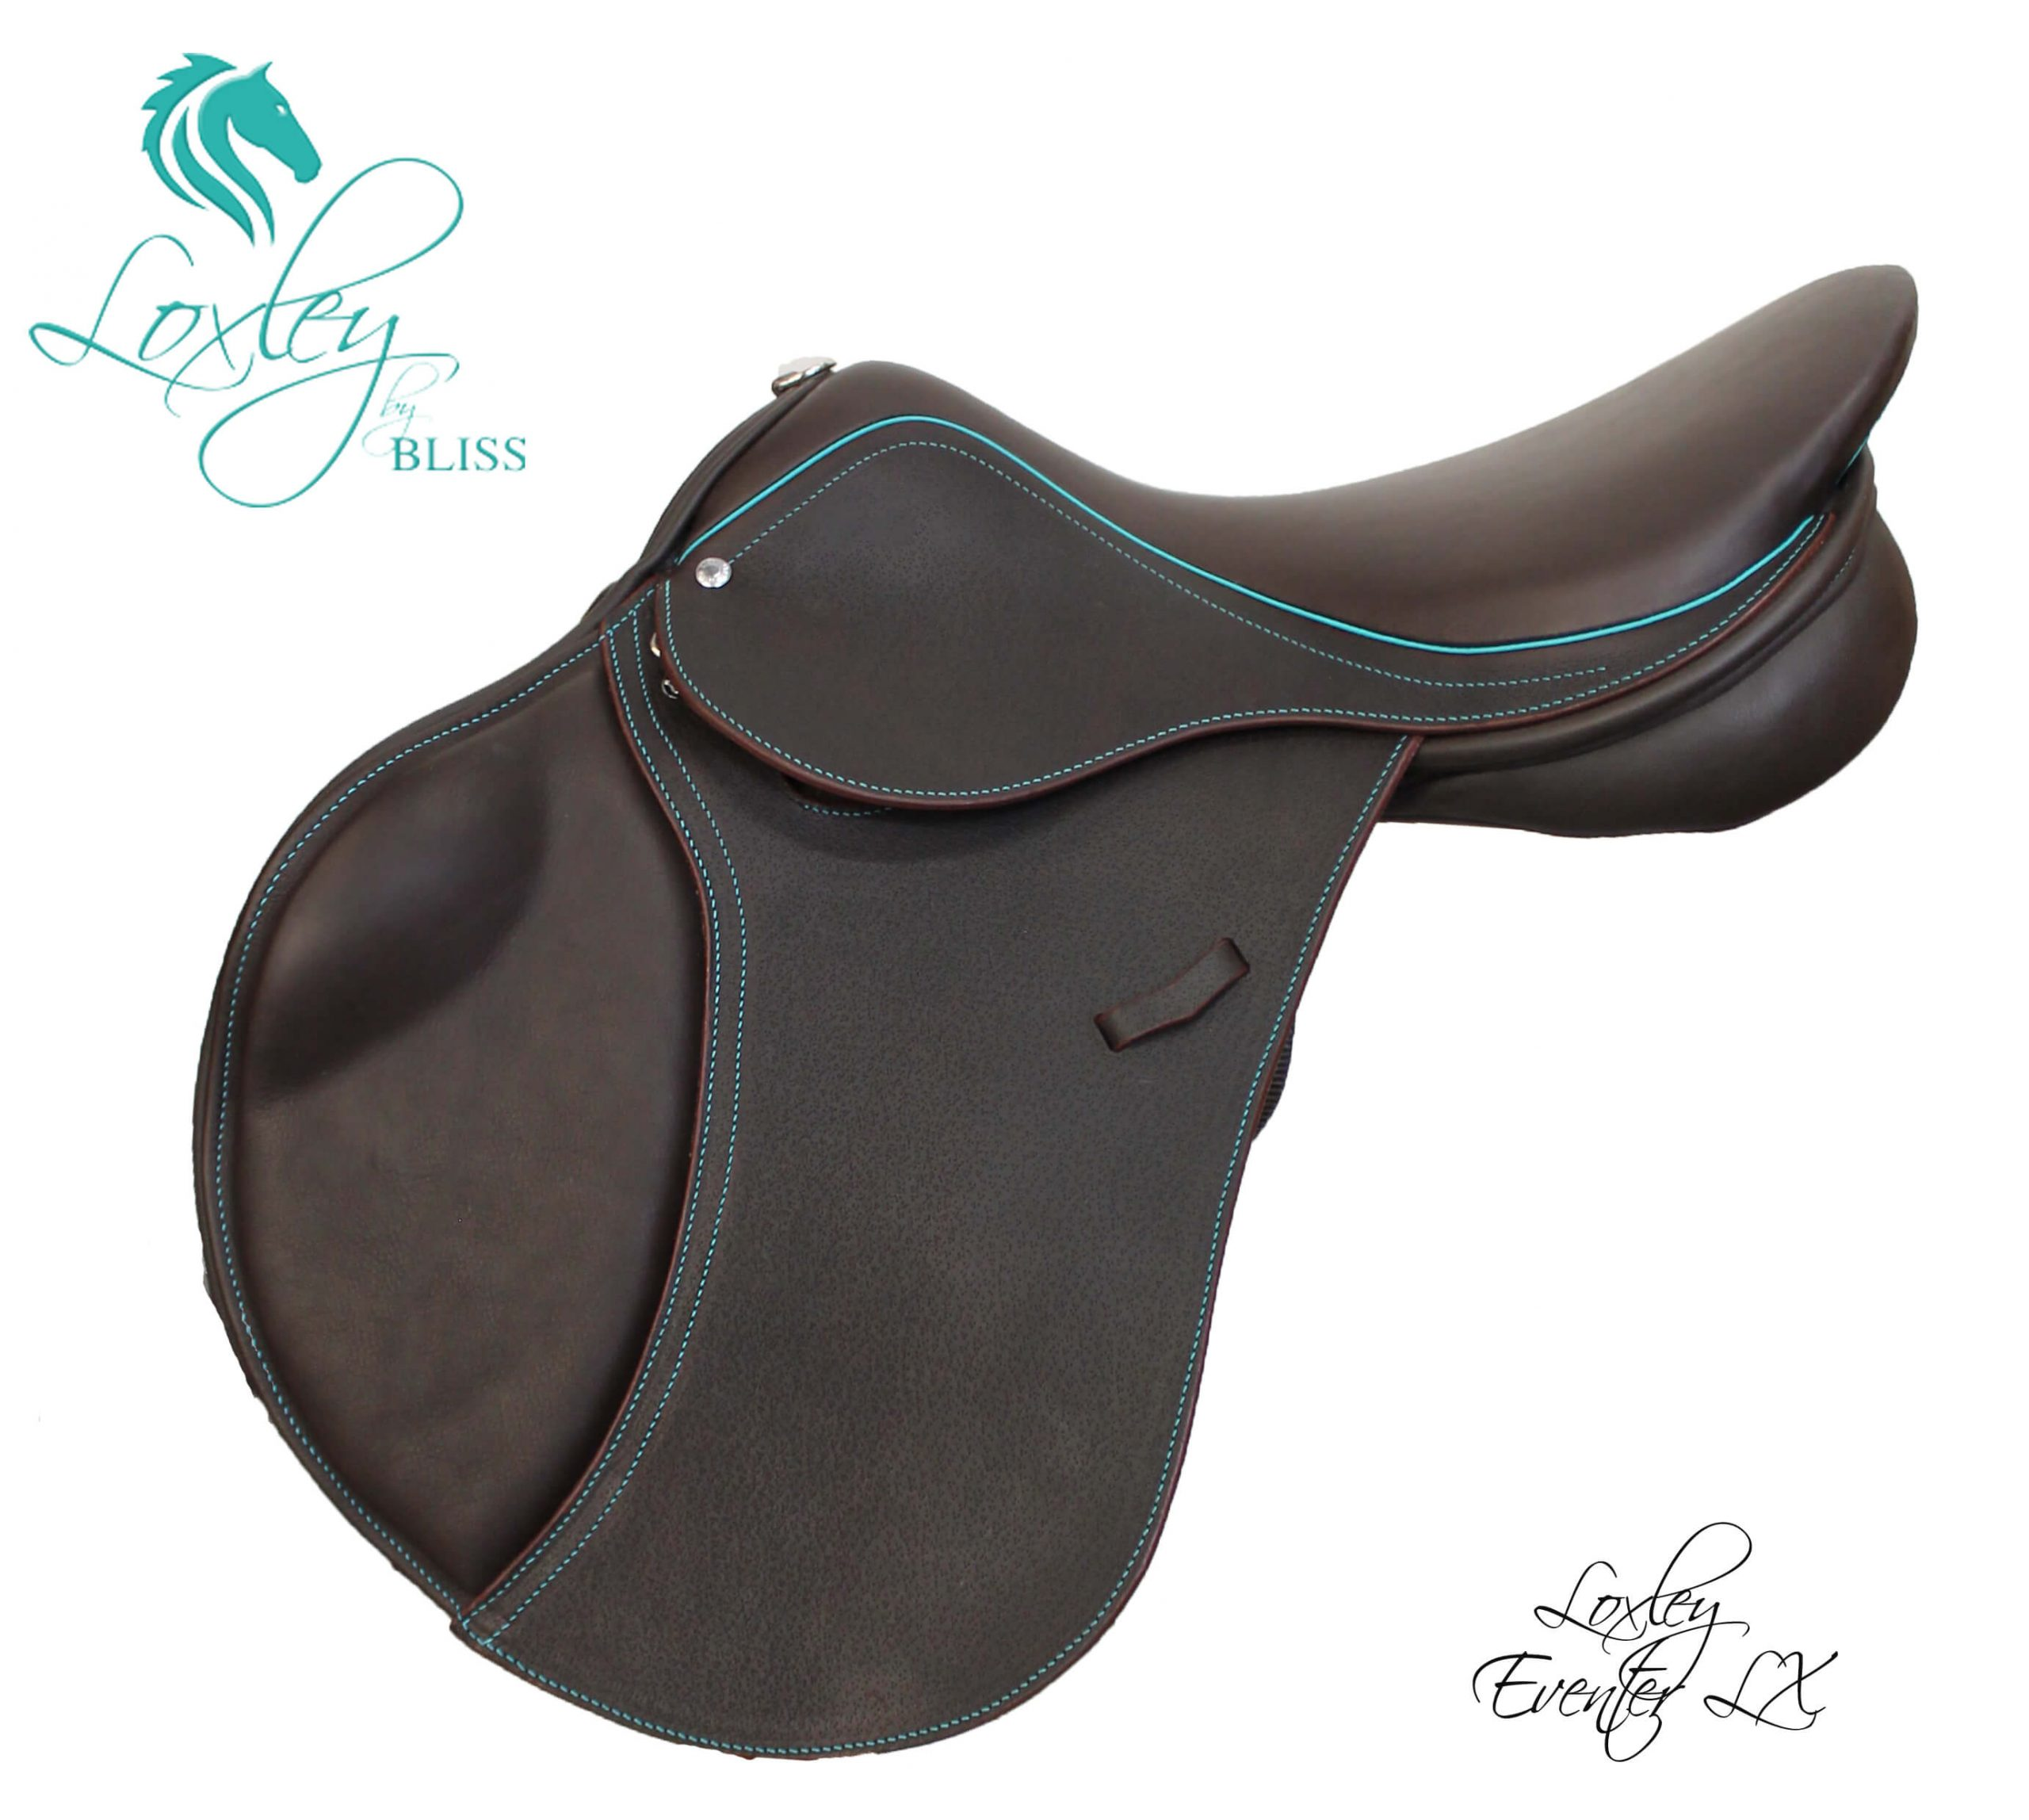 Loxley Eventer LX Saddle